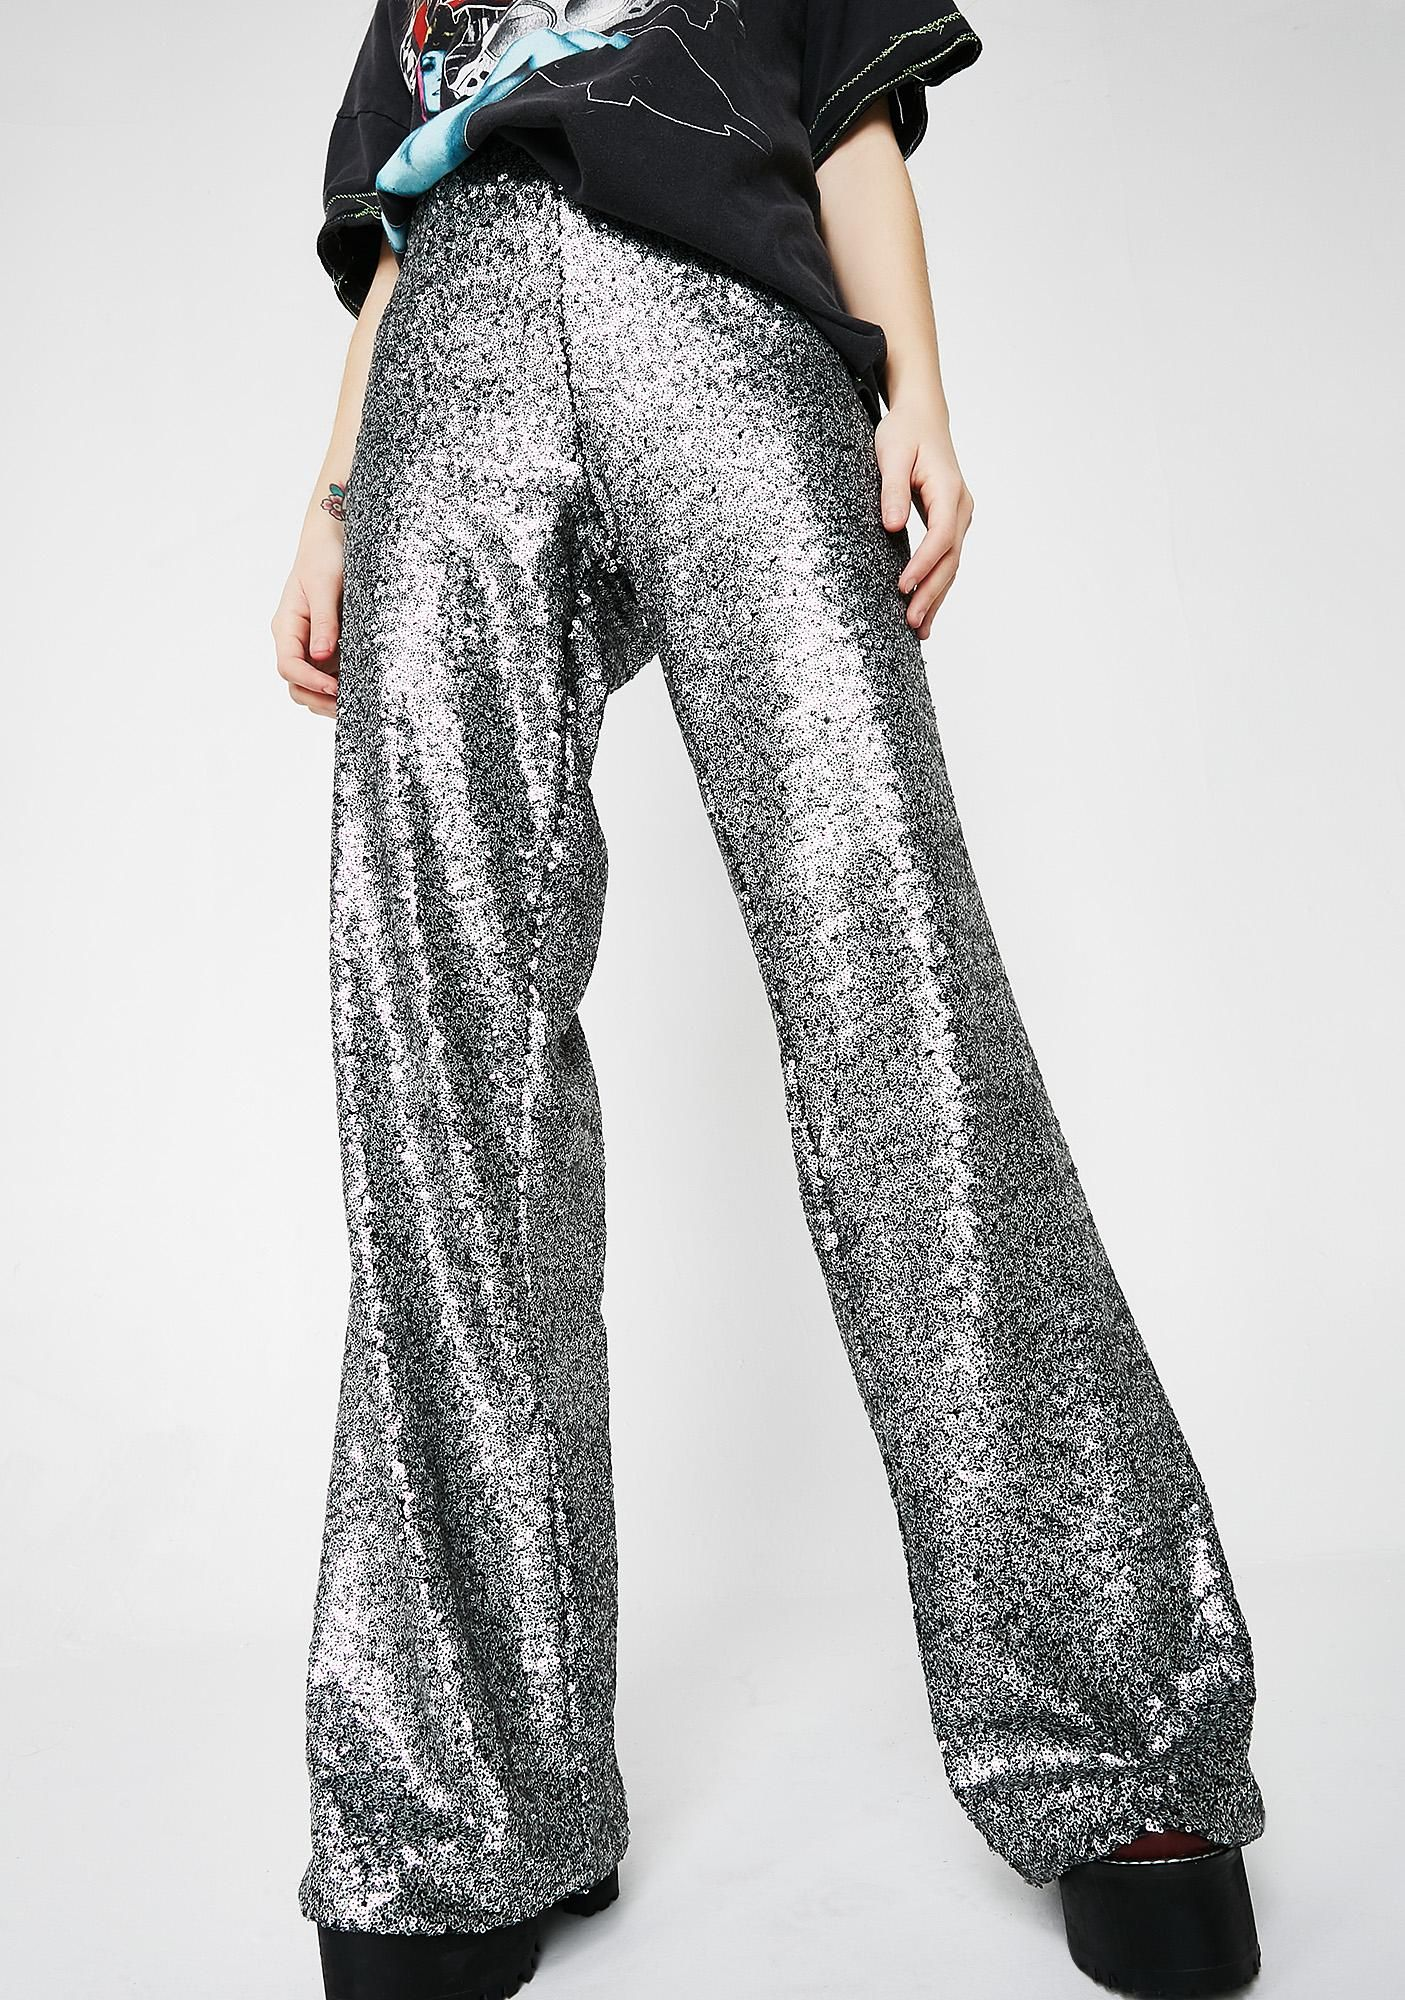 a93b69a7 Keep yourself on the dance floor with these groovy wide leg pants that have  a high waist construction and a silver sequin embellishment.